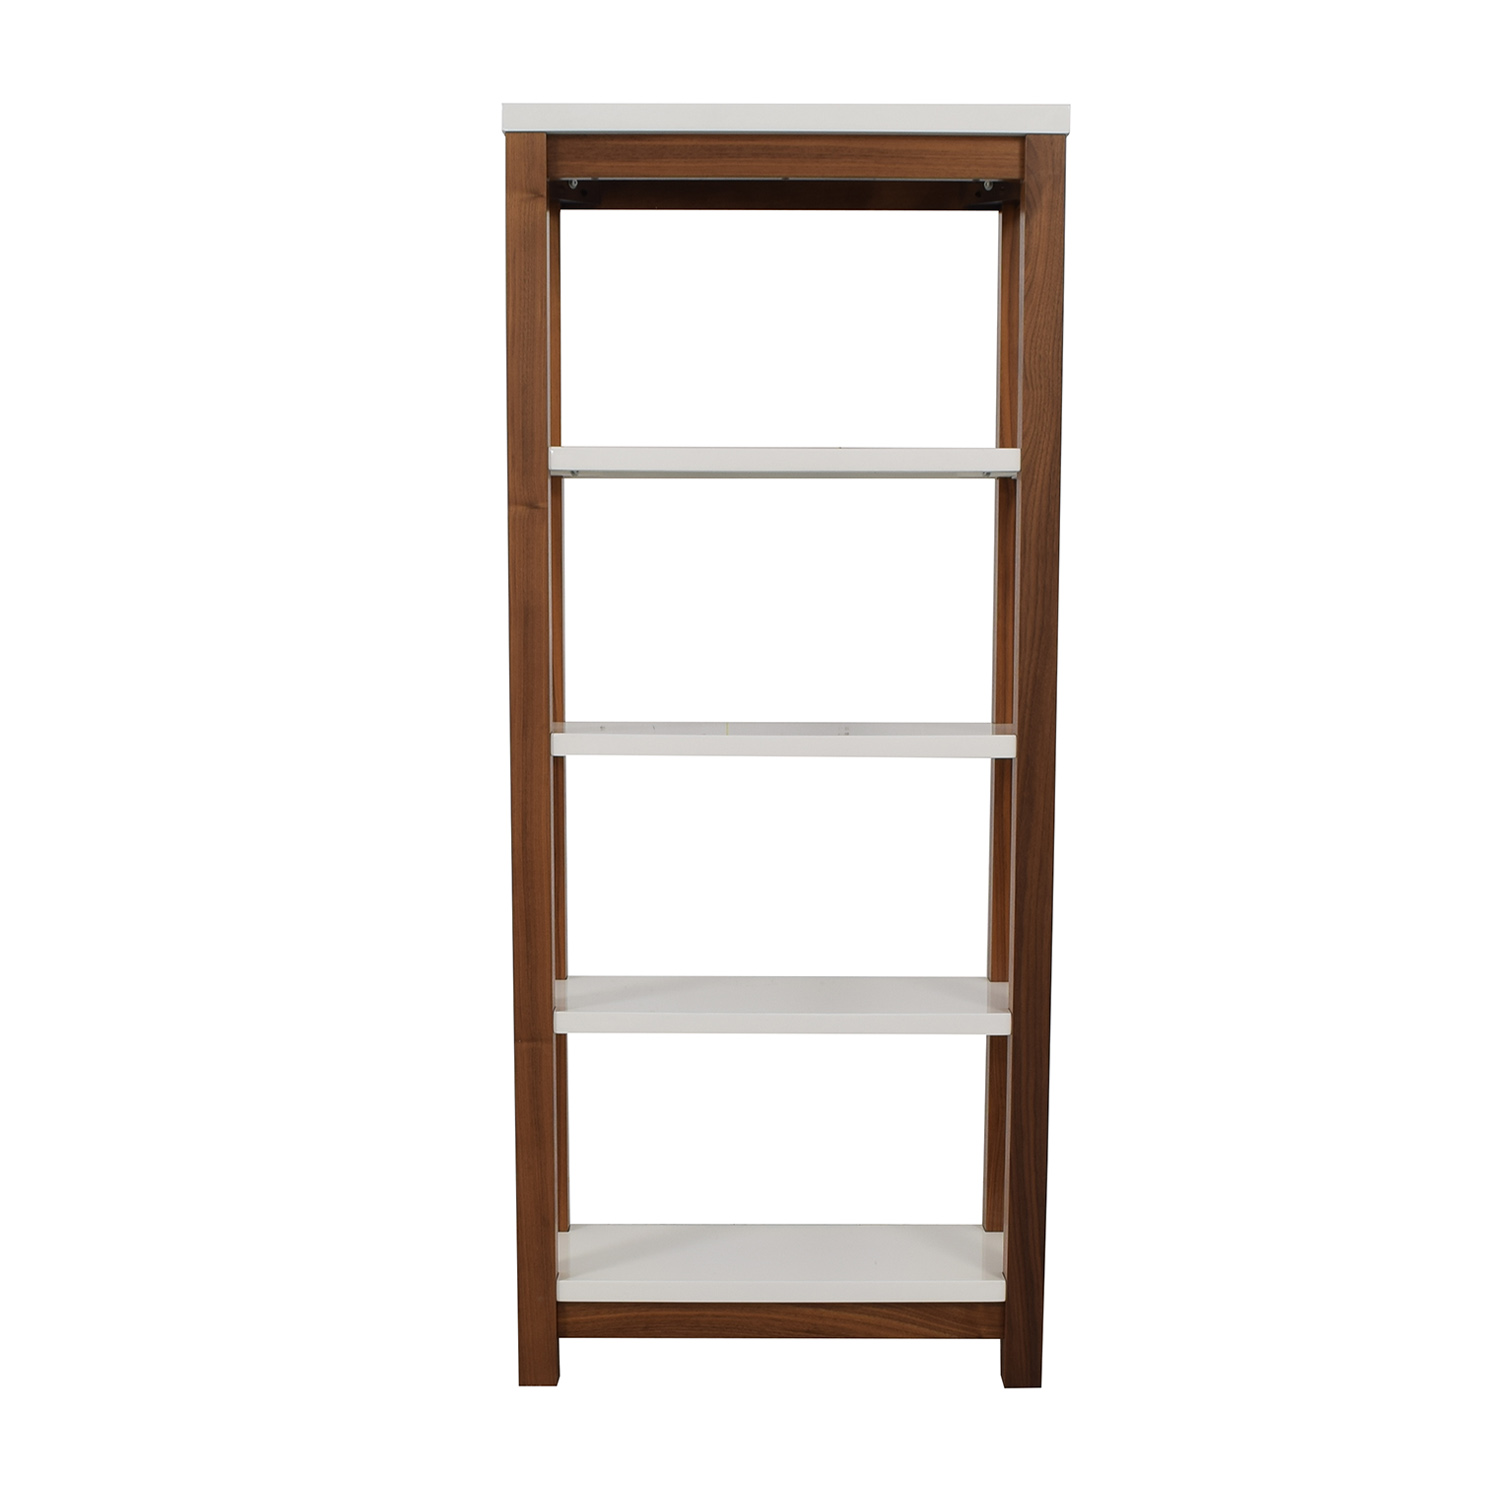 Crate & Barrel Crate & Barrel Bookcase